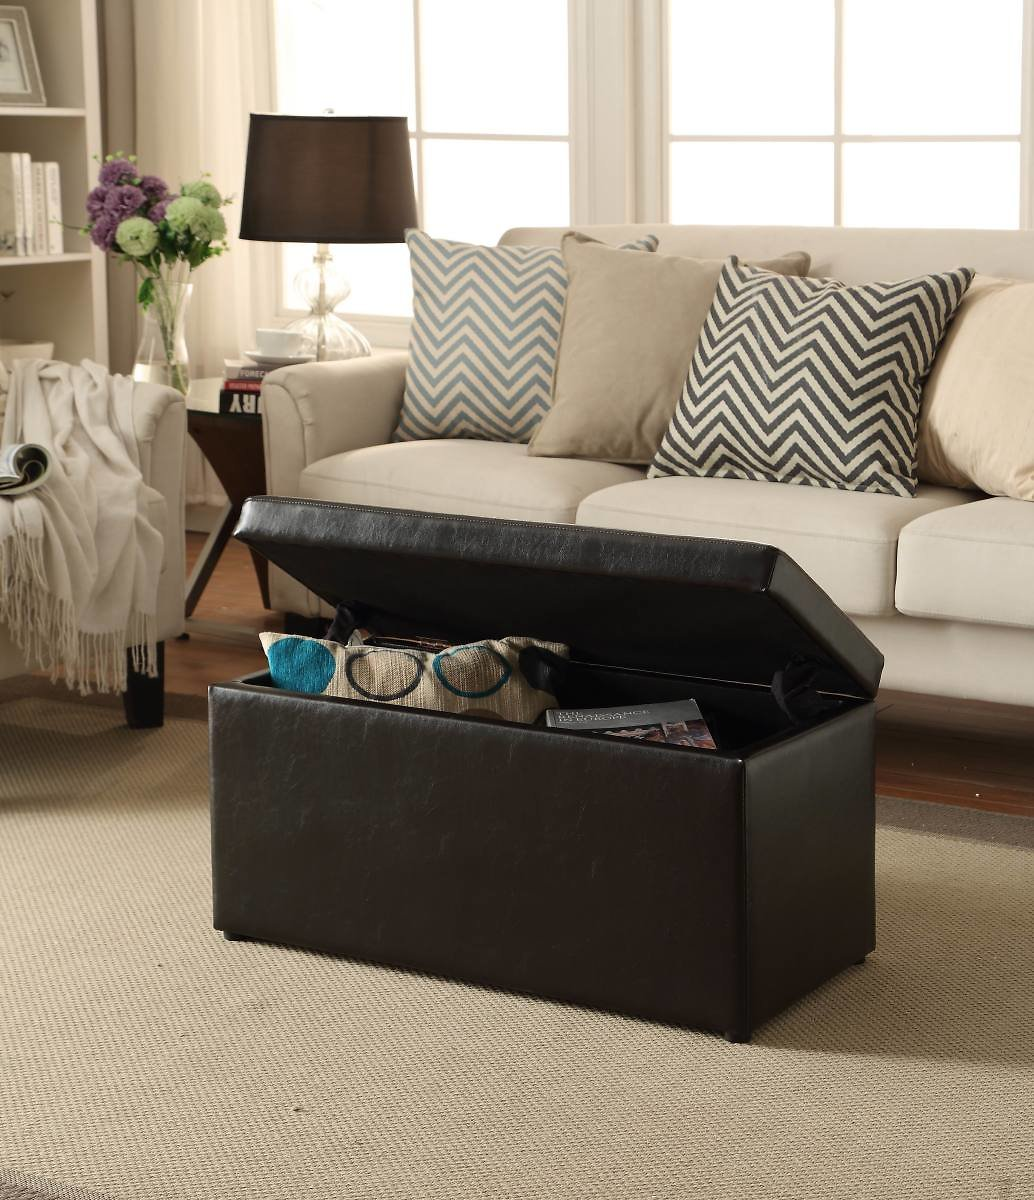 Better Homes and Gardens 30 Inch Hinged Storage Ottoman - Brown